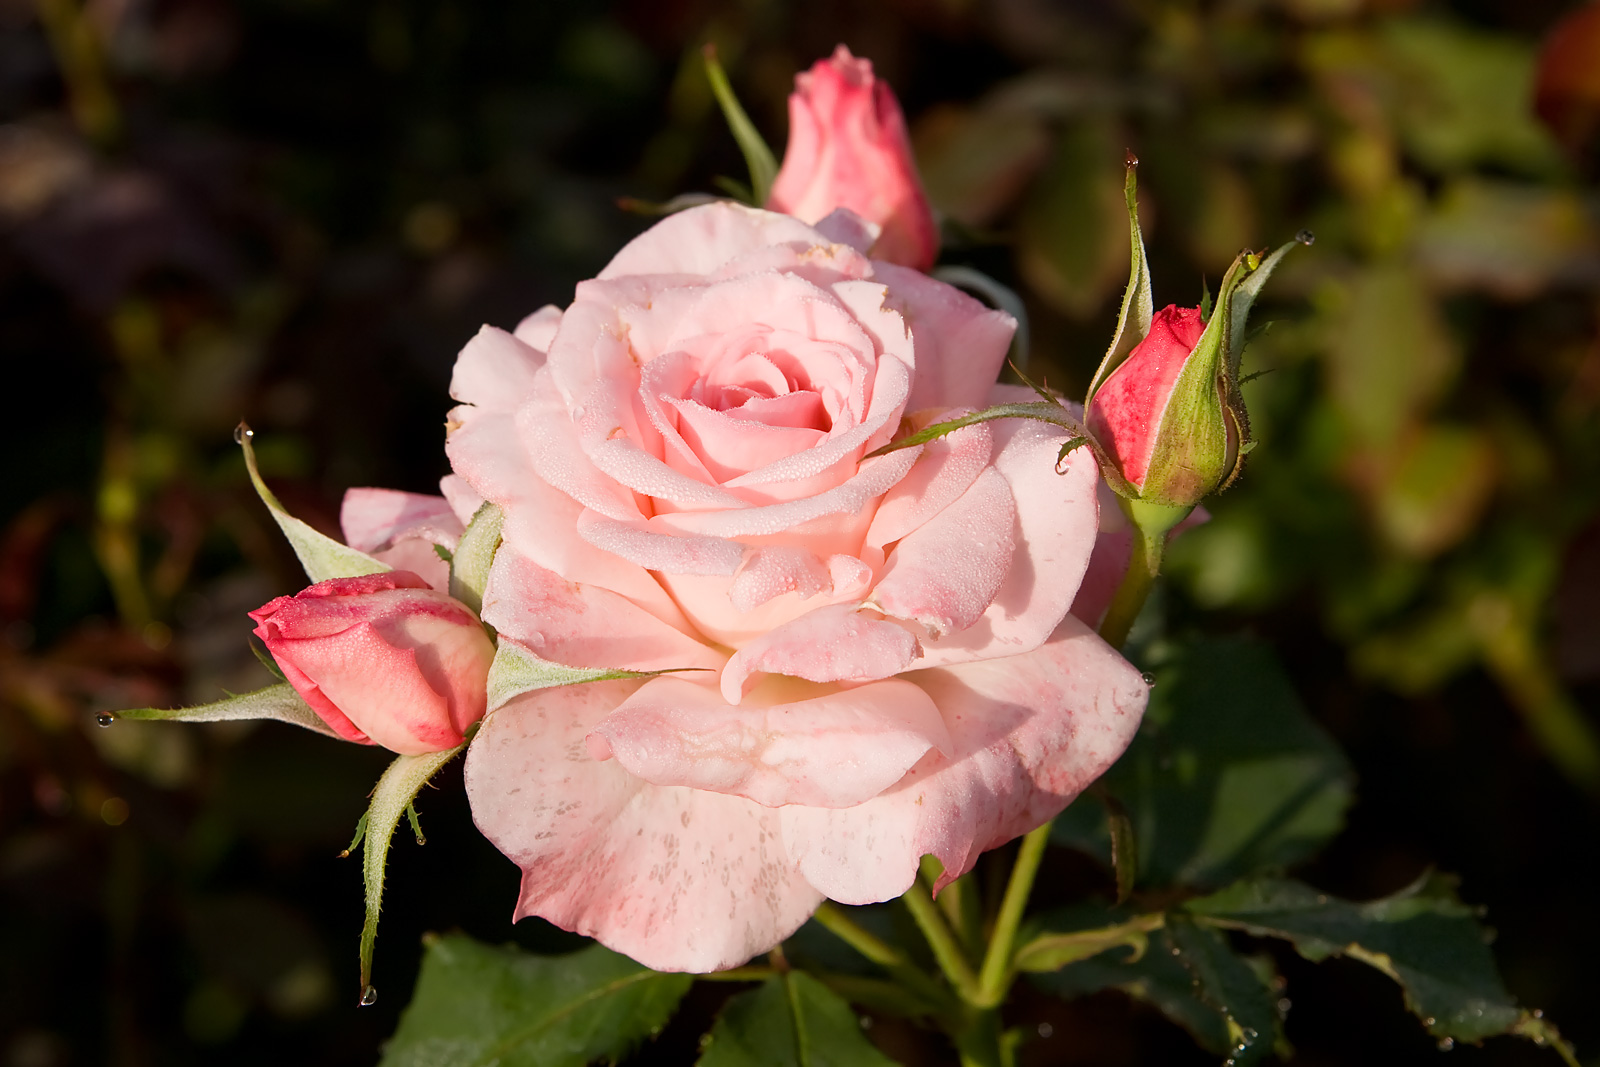 Rosa Pink Rose Simple English Wikipedia The Free Encyclopedia